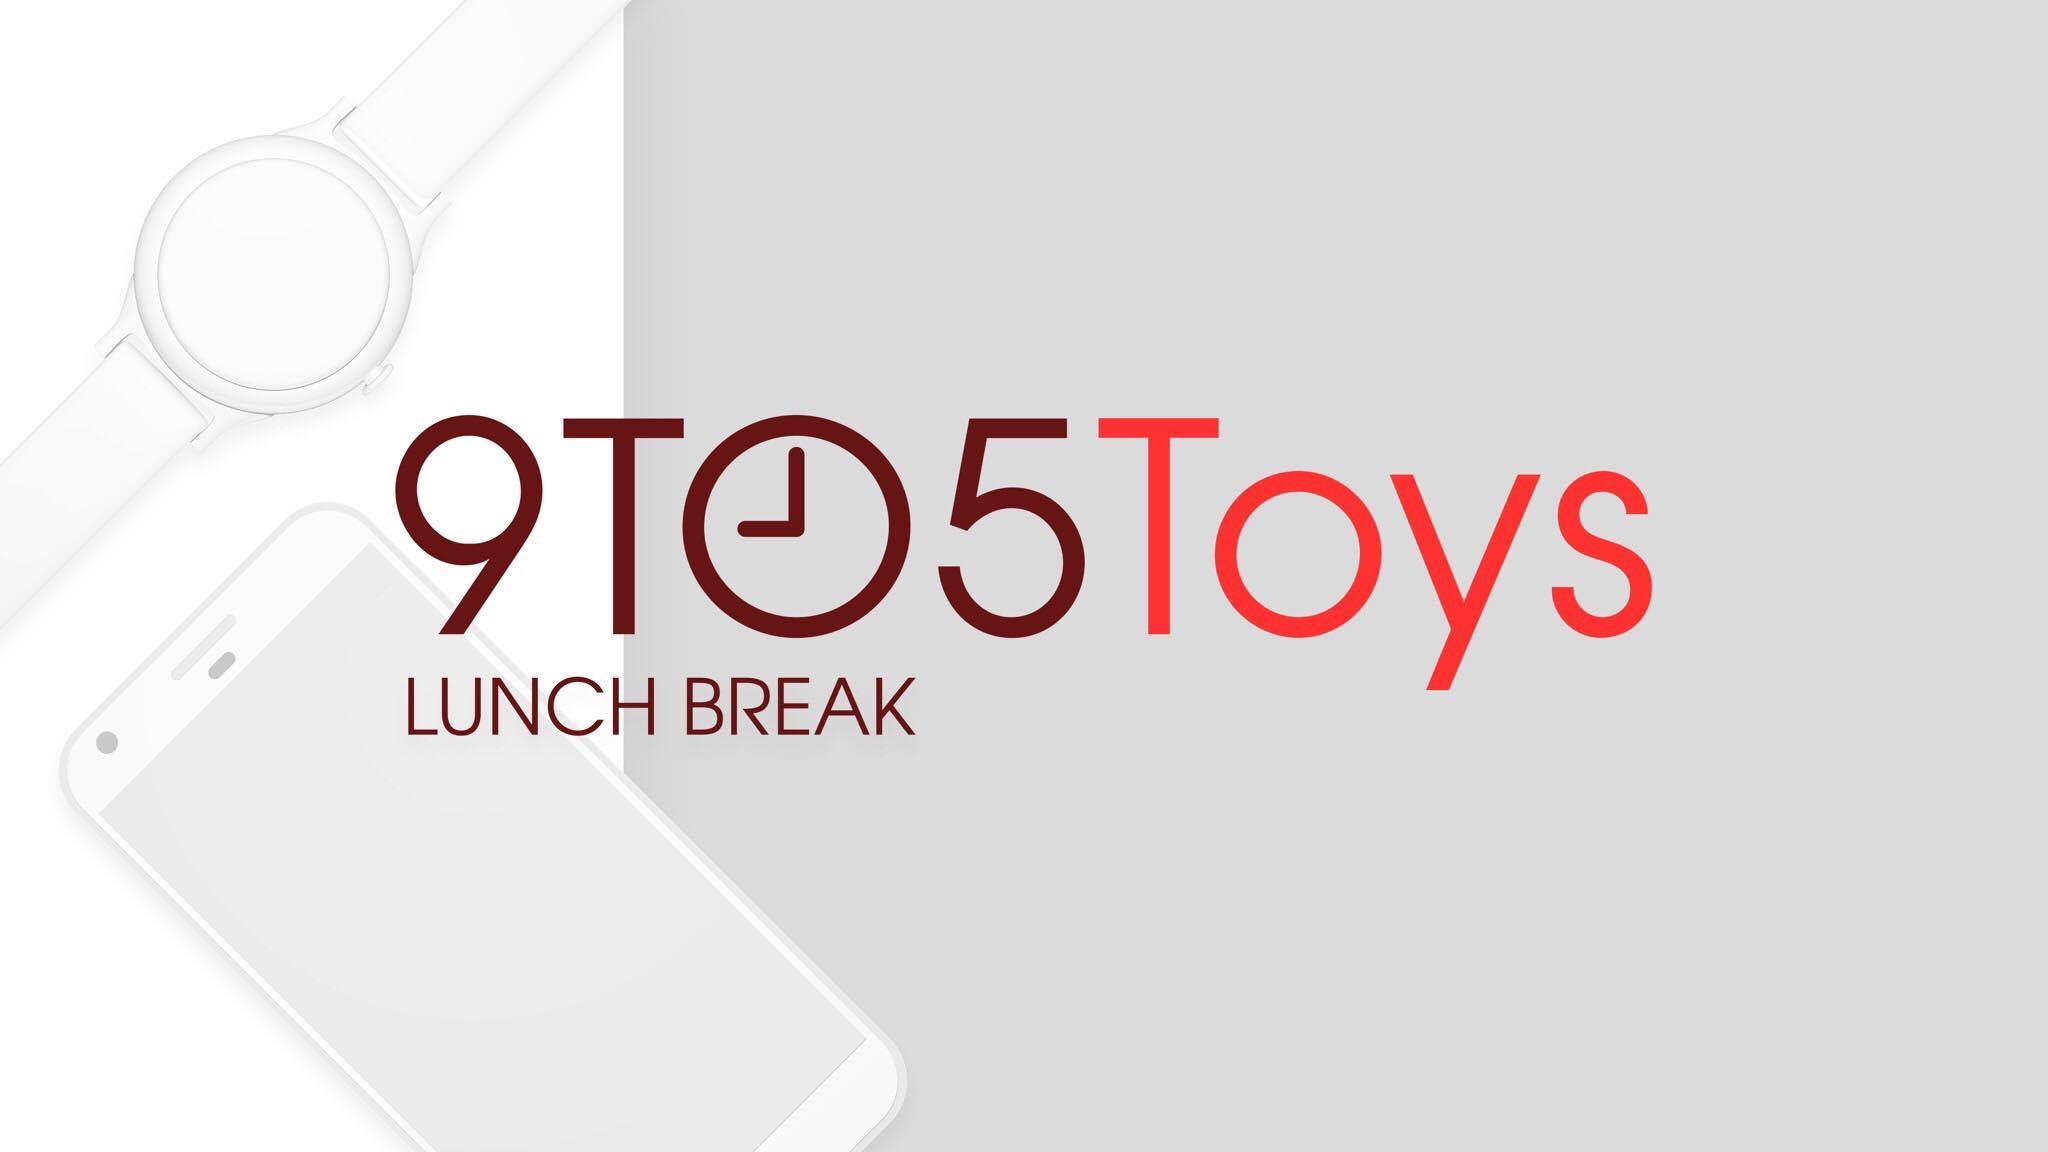 9to5toys lunch break pixel 3 xl cases 4 anker bluetooth soundbar 68 vivitek wireless 720p projector 320 more